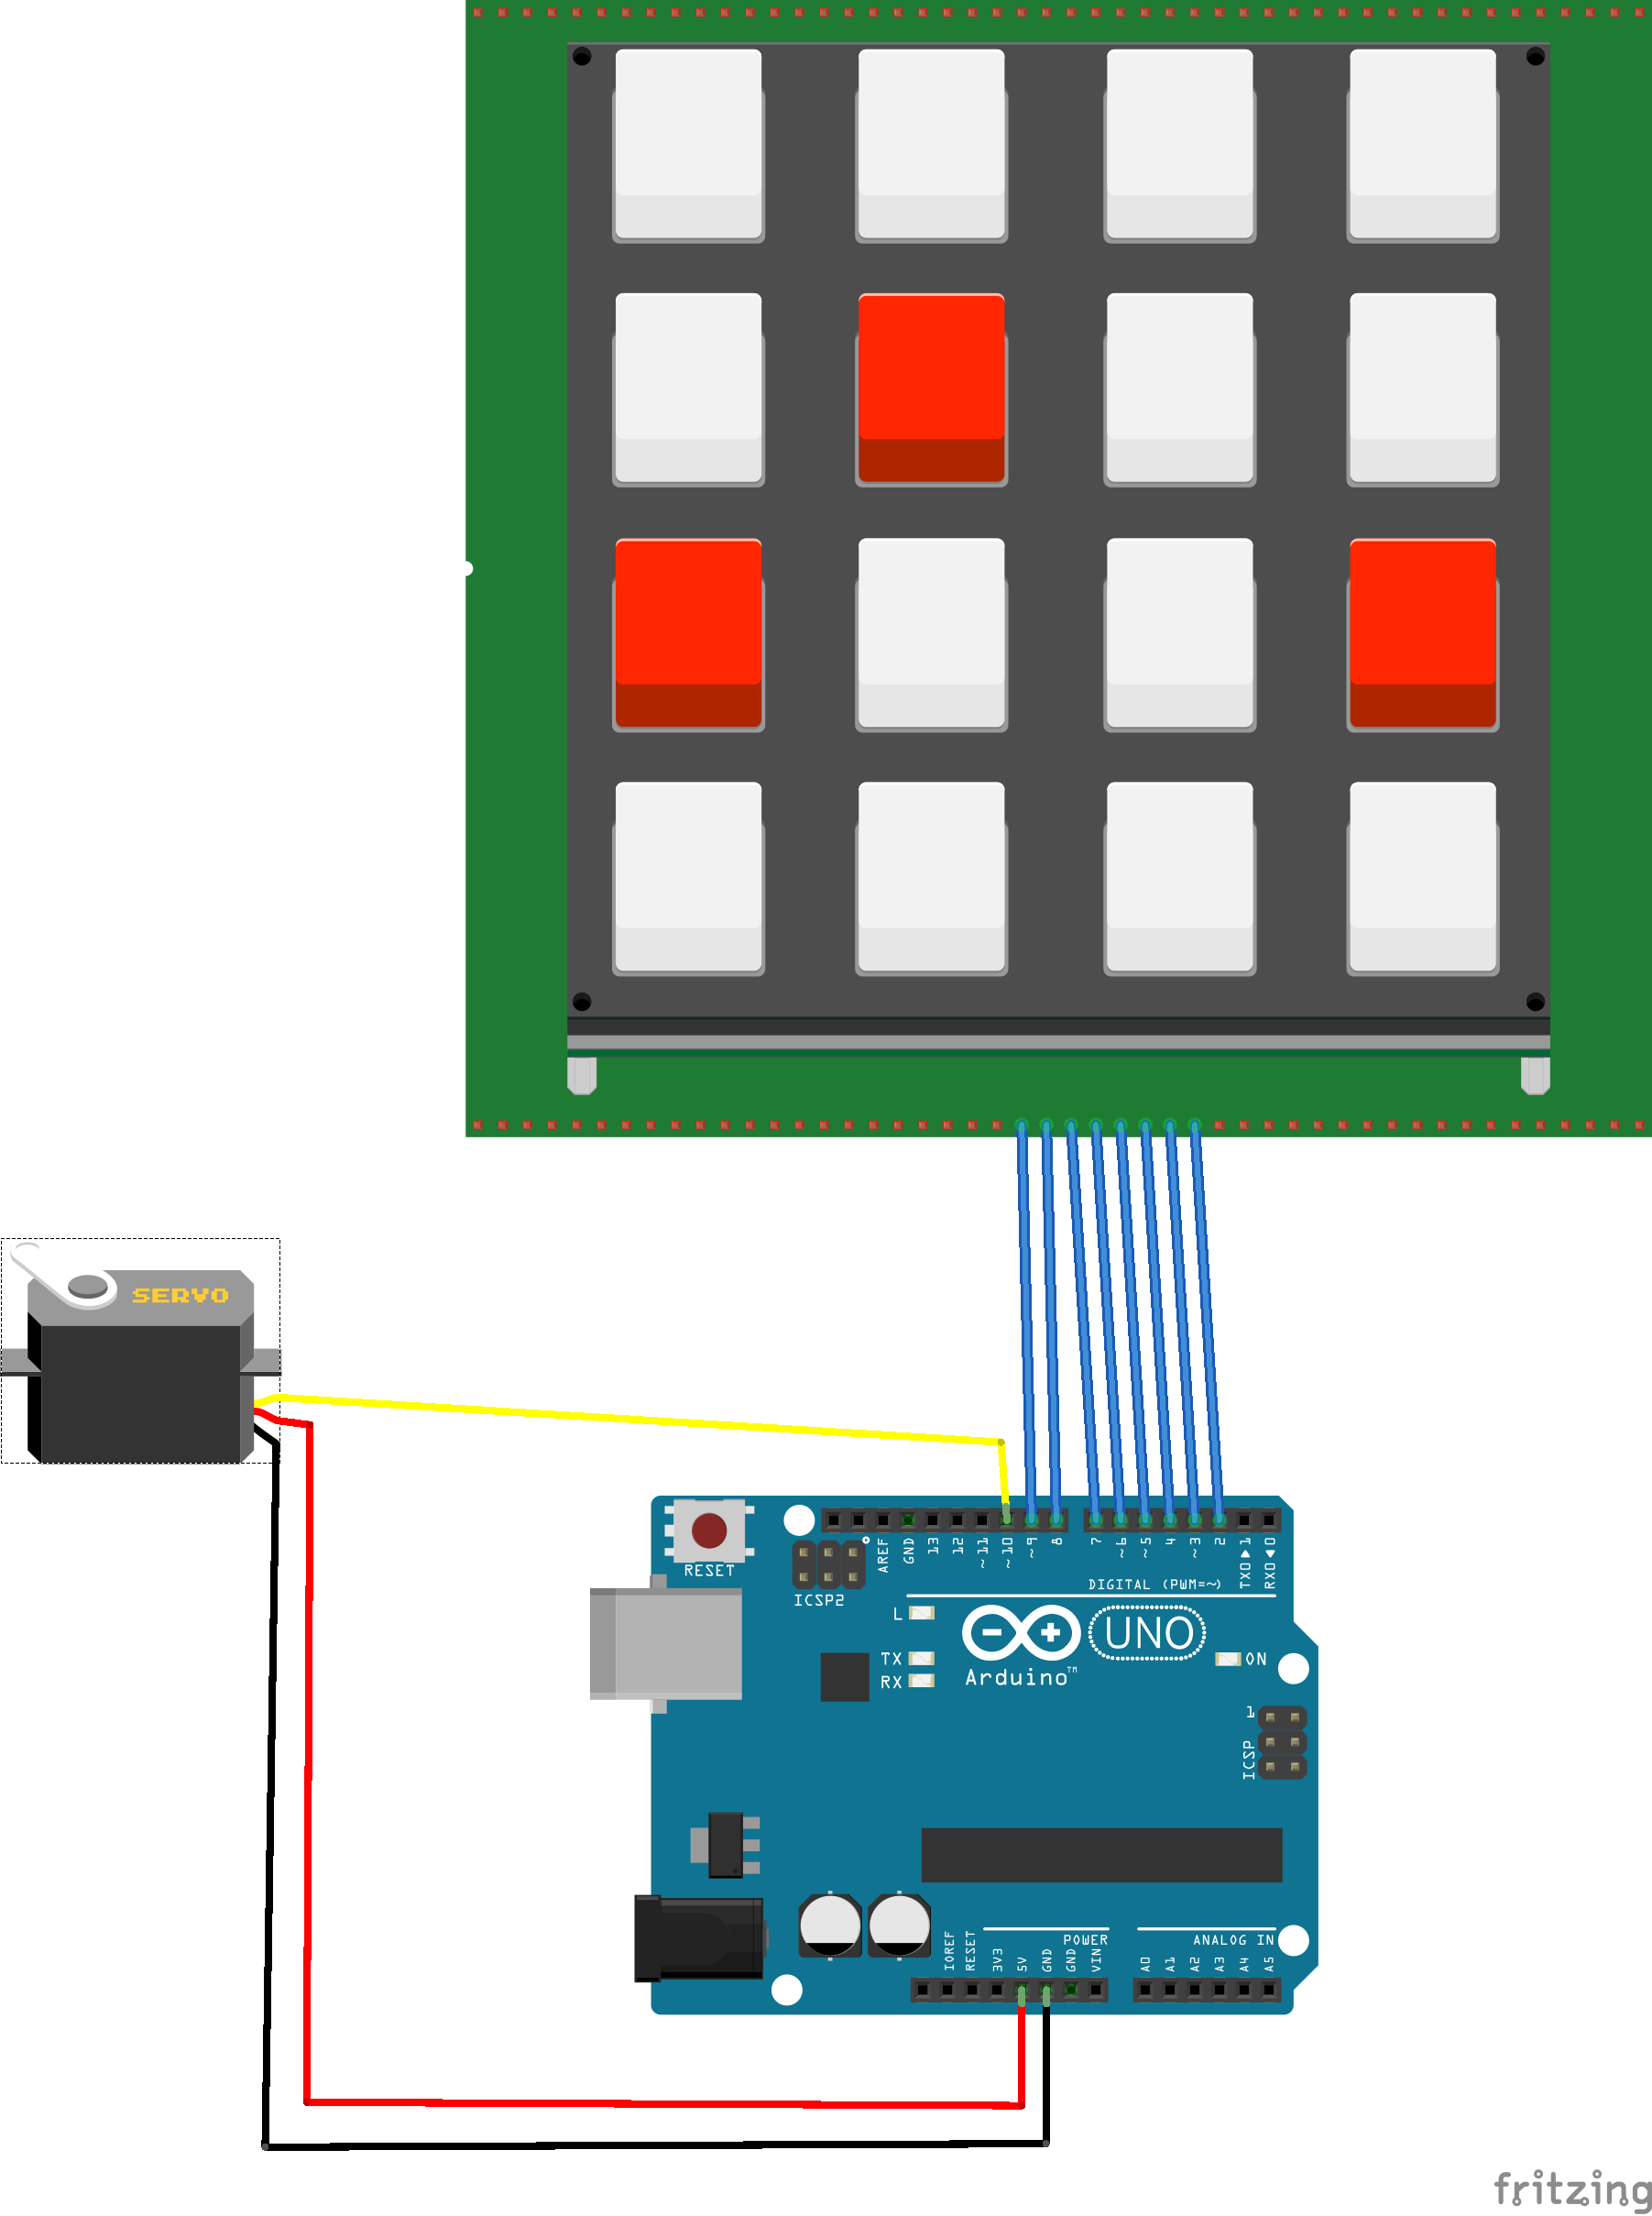 Picture of Servo Positioning Final